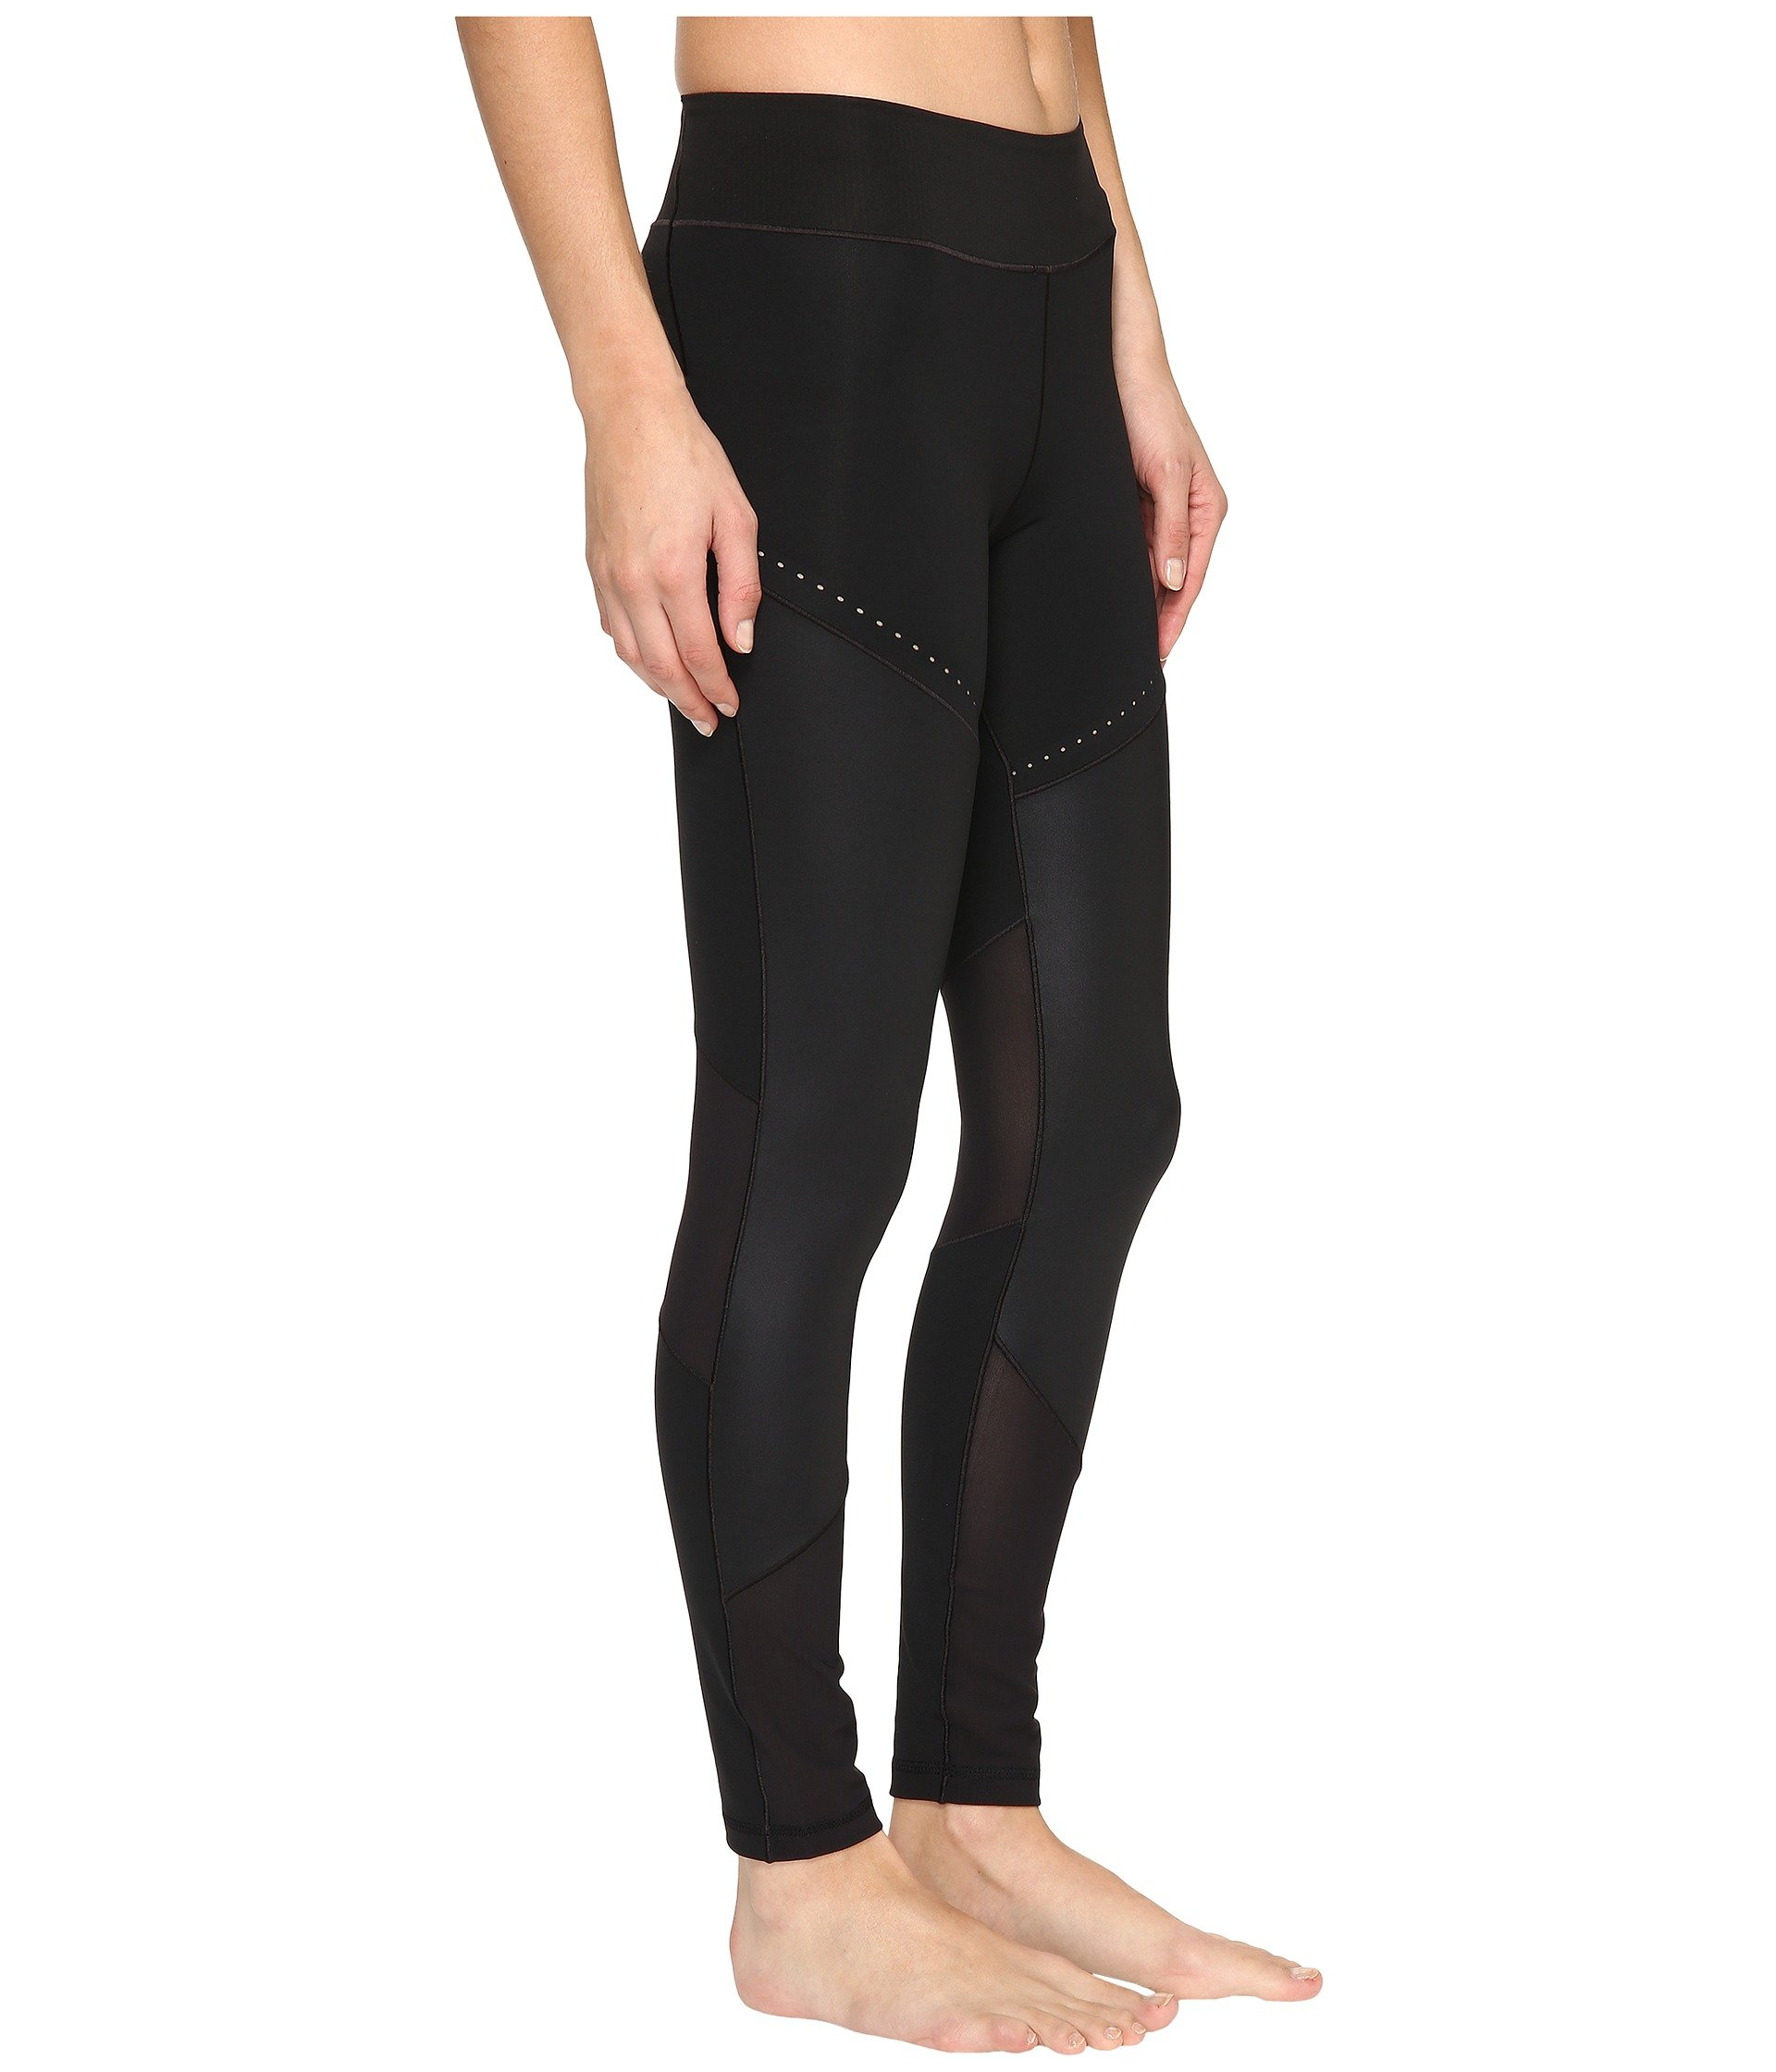 adidas Women's Training Wow Drop Tights, Black, Small by adidas (Image #5)